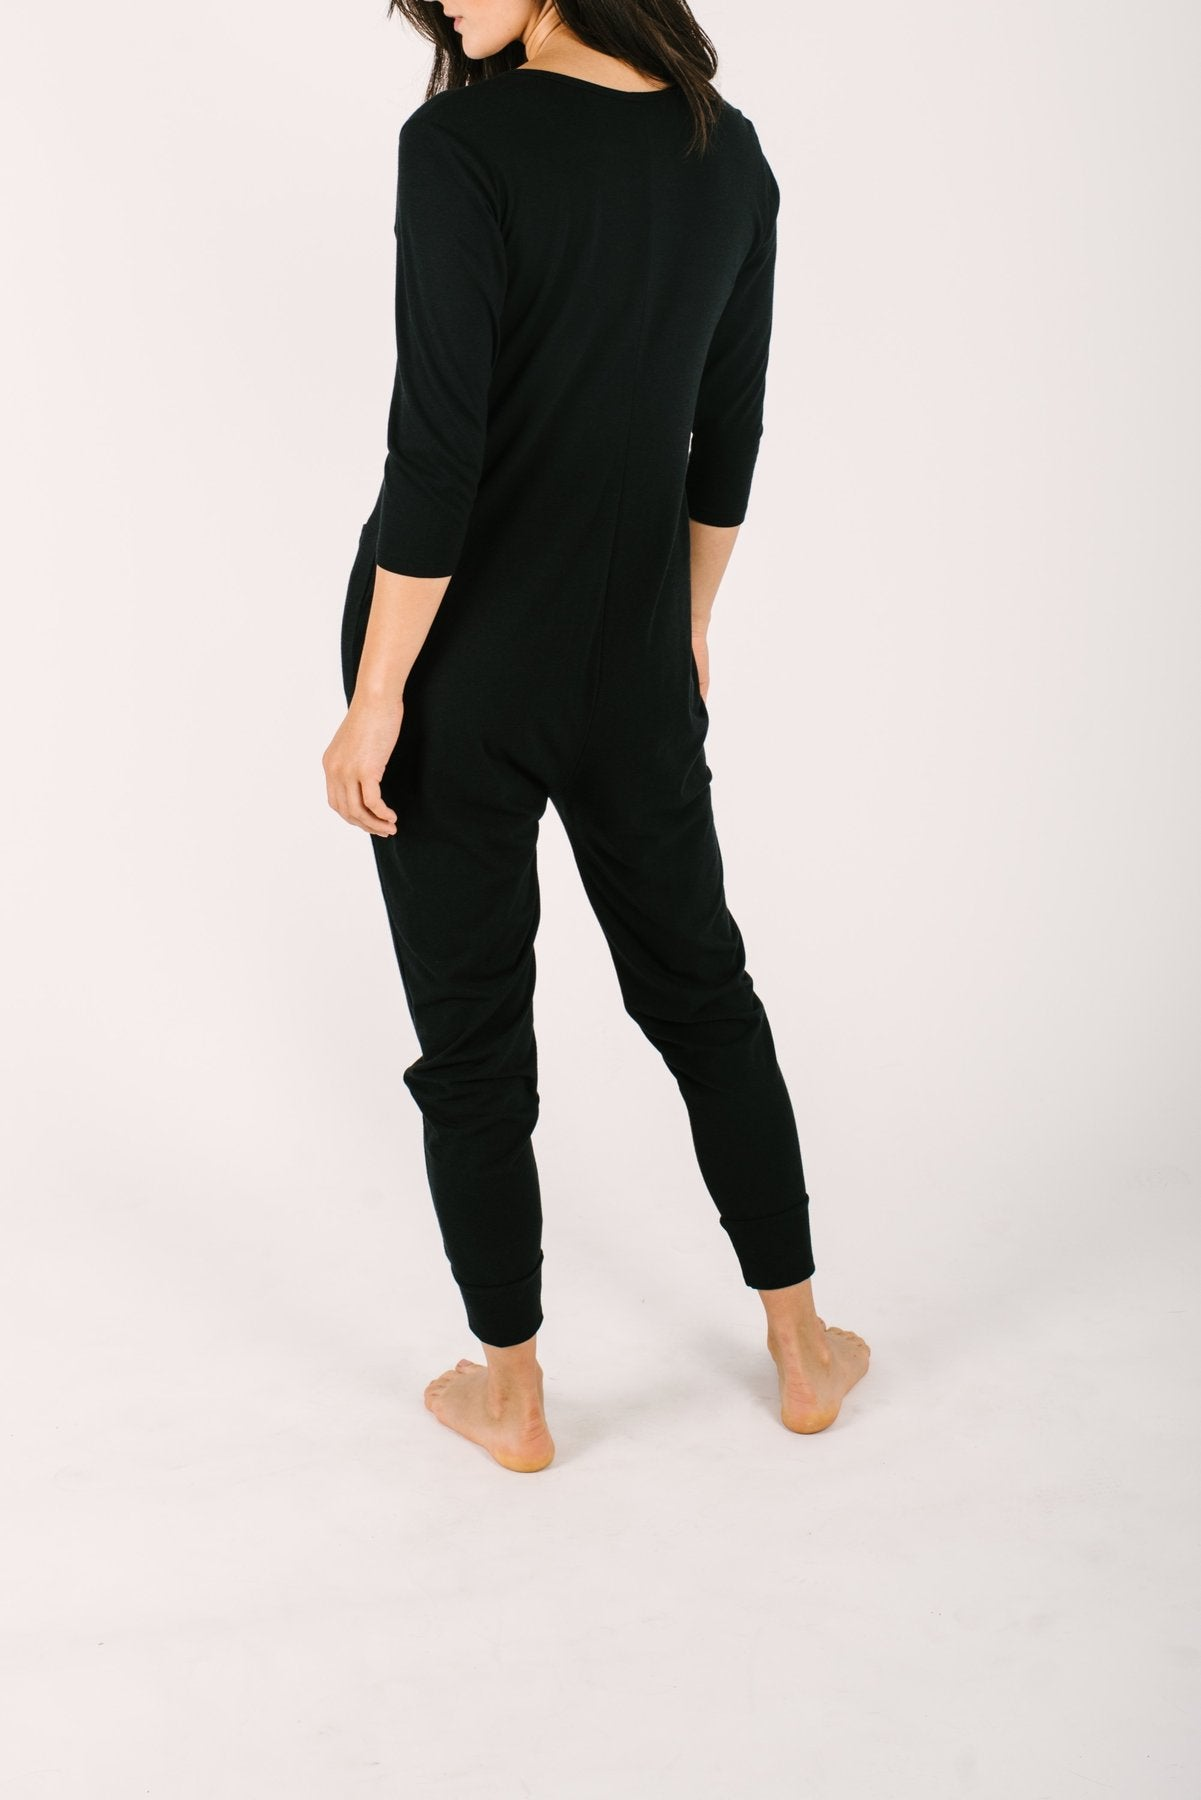 Photo of the back of the Monday Romper in black by Smash and Tess.